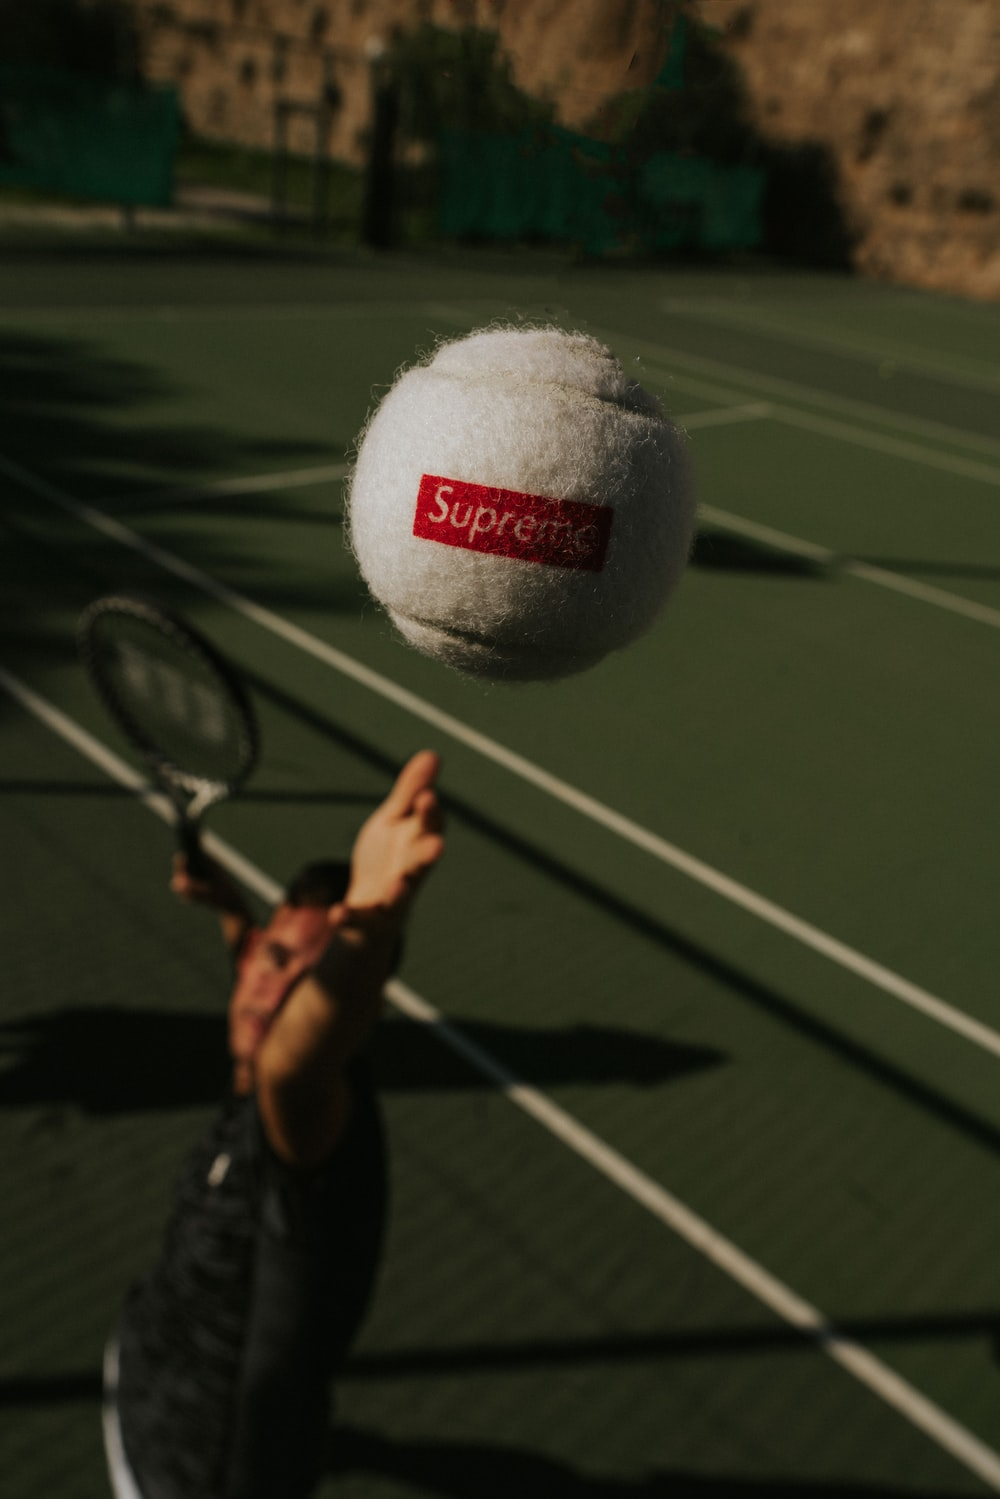 person holding white and red UNK tennis ball